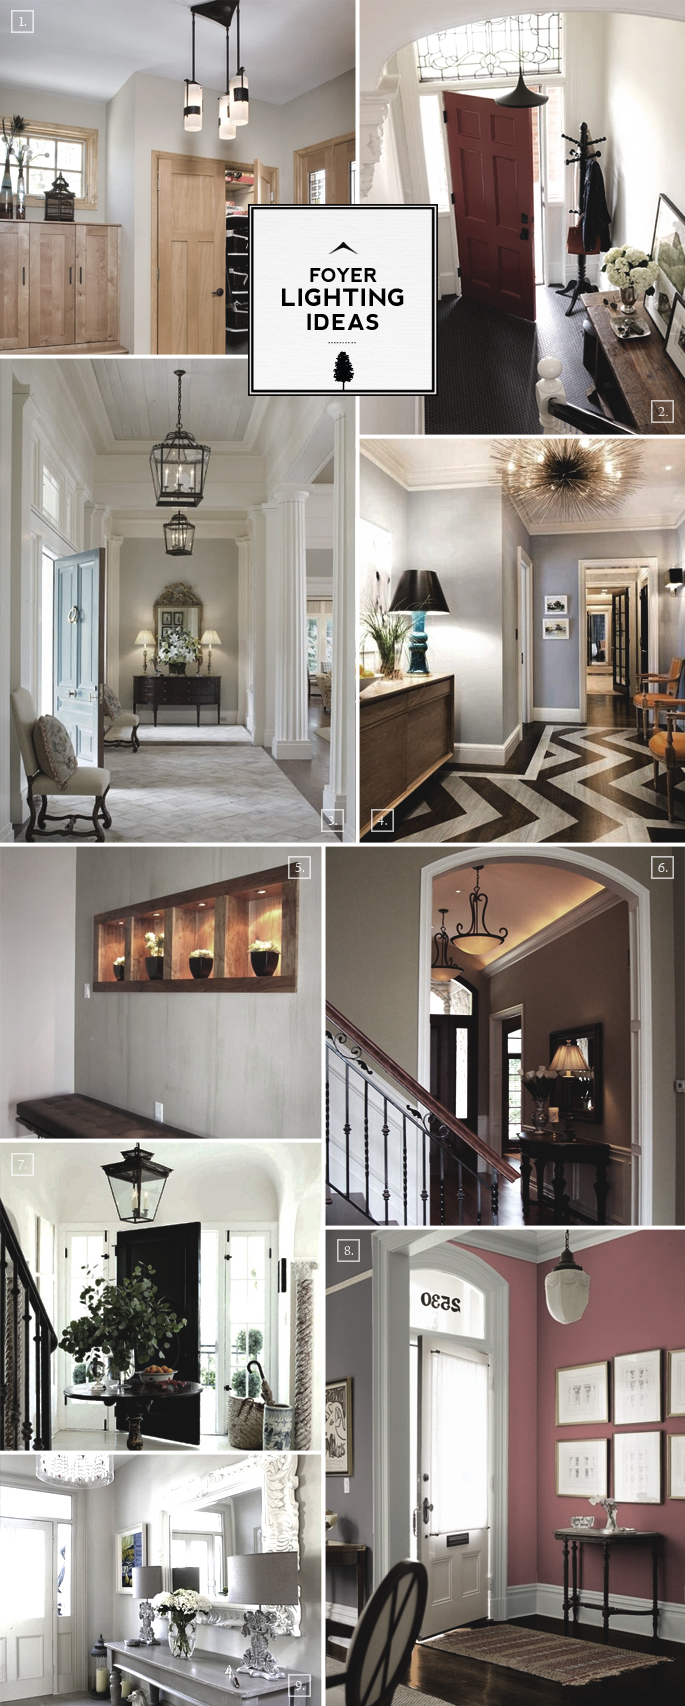 Entry Foyer Lighting Ideas: For Large and Small Spaces